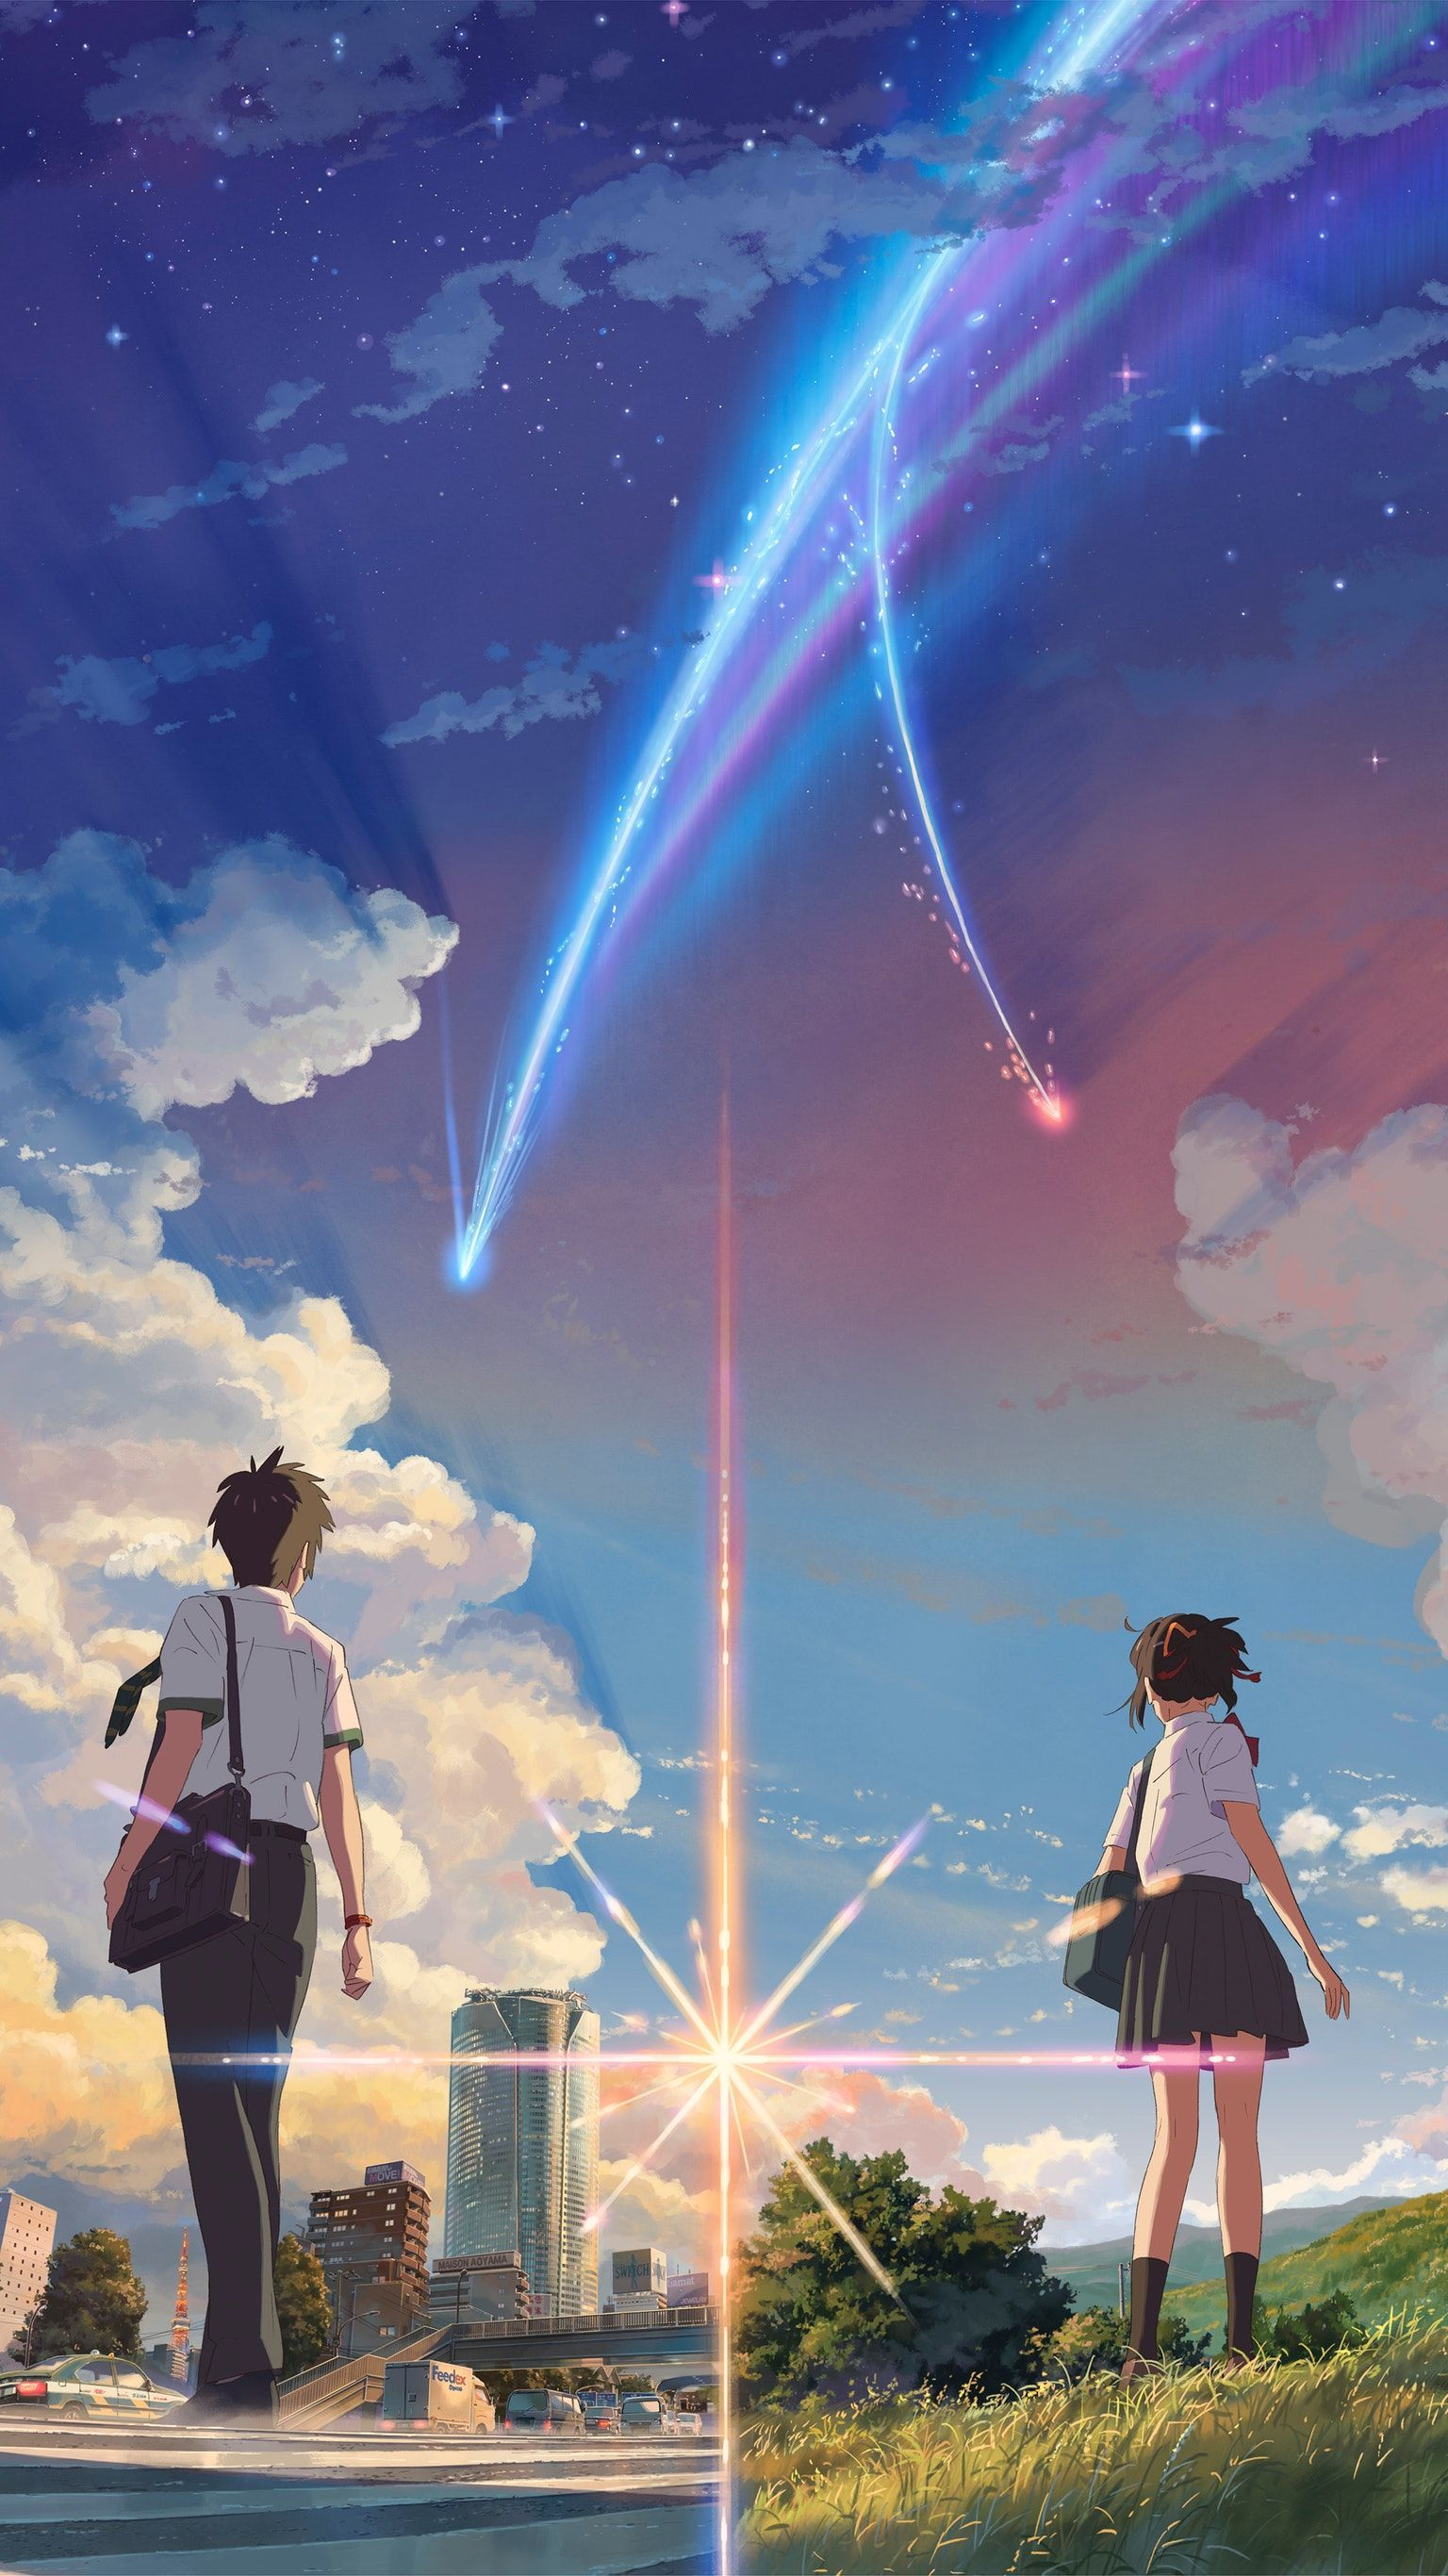 Your Name Anime 2016 Wallpapers Top Free Your Name Anime 2016 Backgrounds Wallpaperaccess